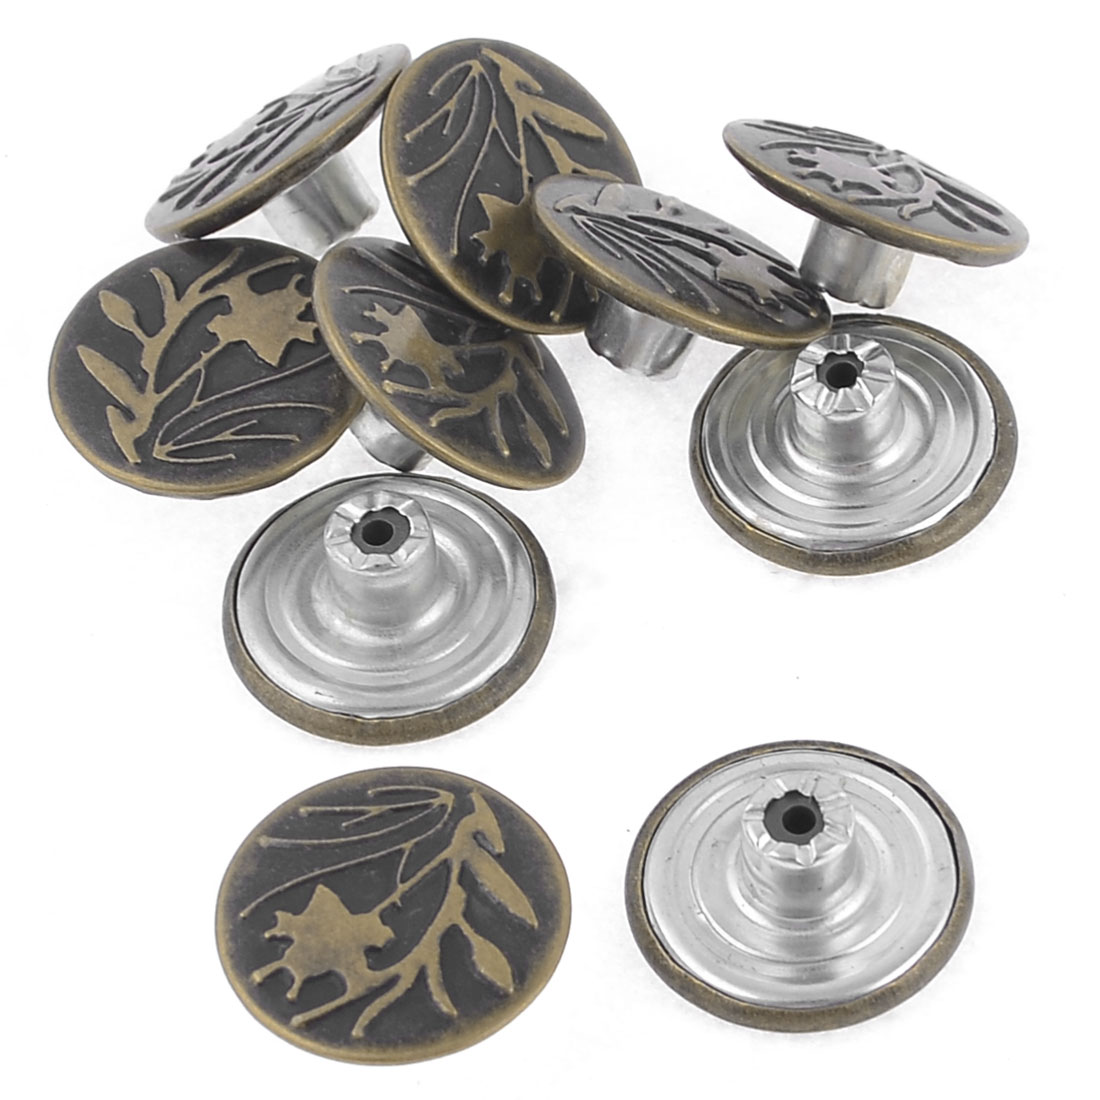 Denim Jacket Jeans Flower Carved Metal Tack Buttons Replacement 10 Pcs